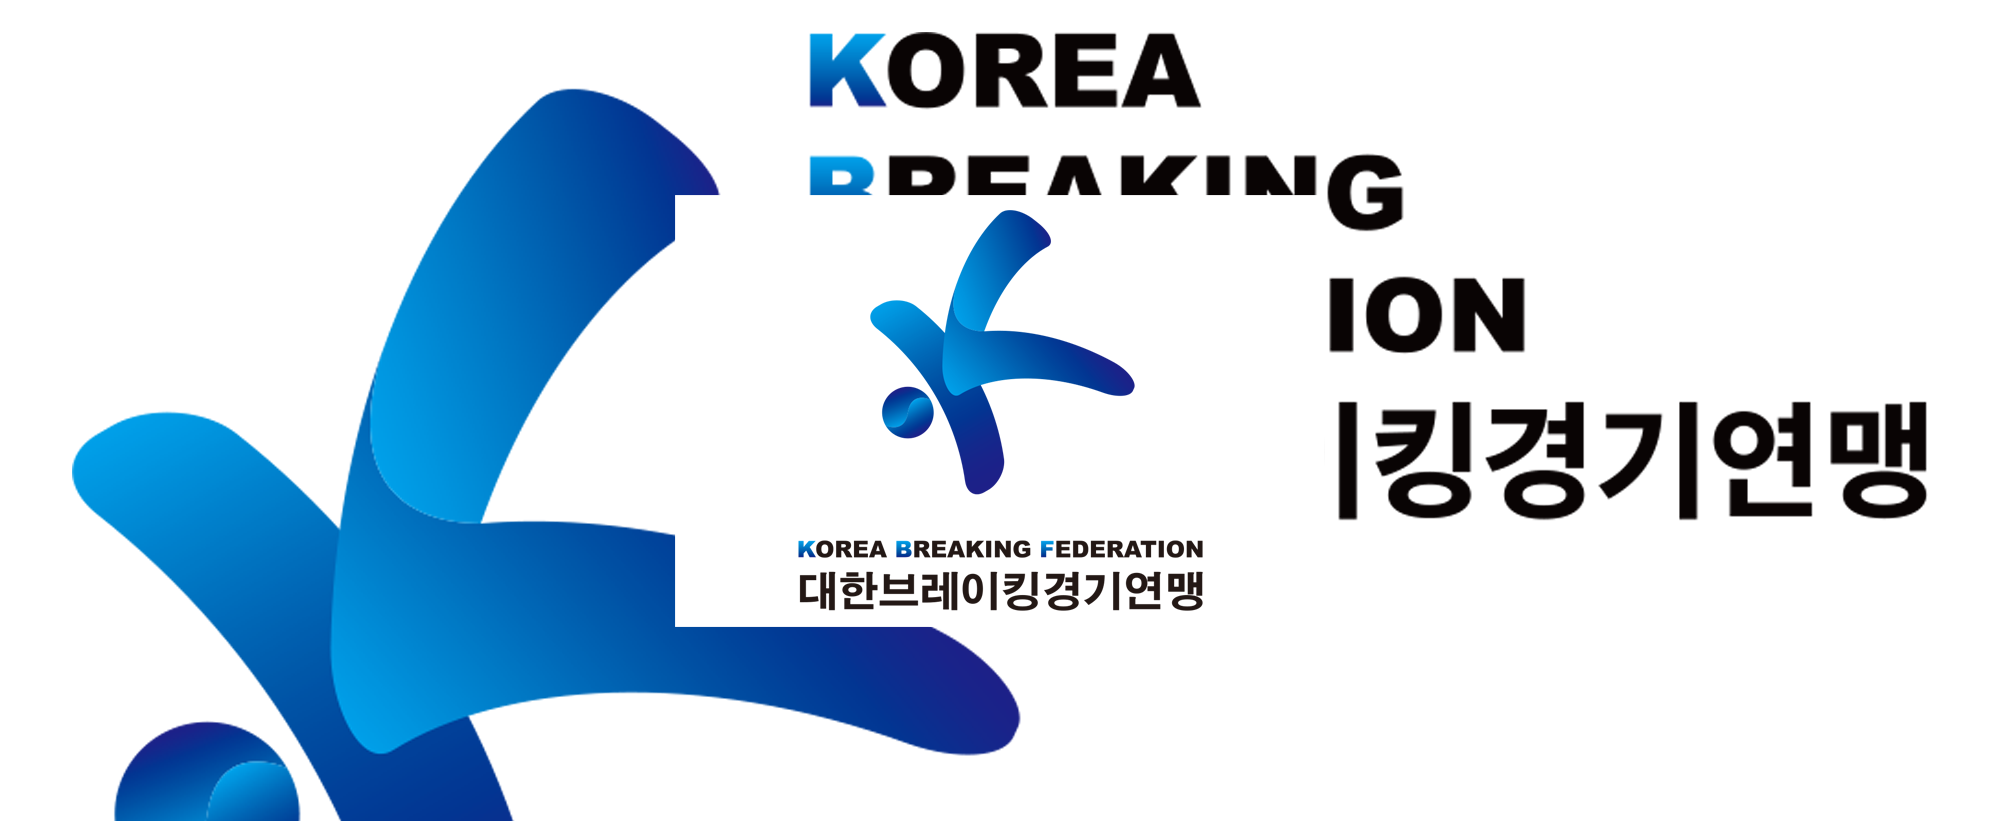 KOREA BREAKING FEDERATION